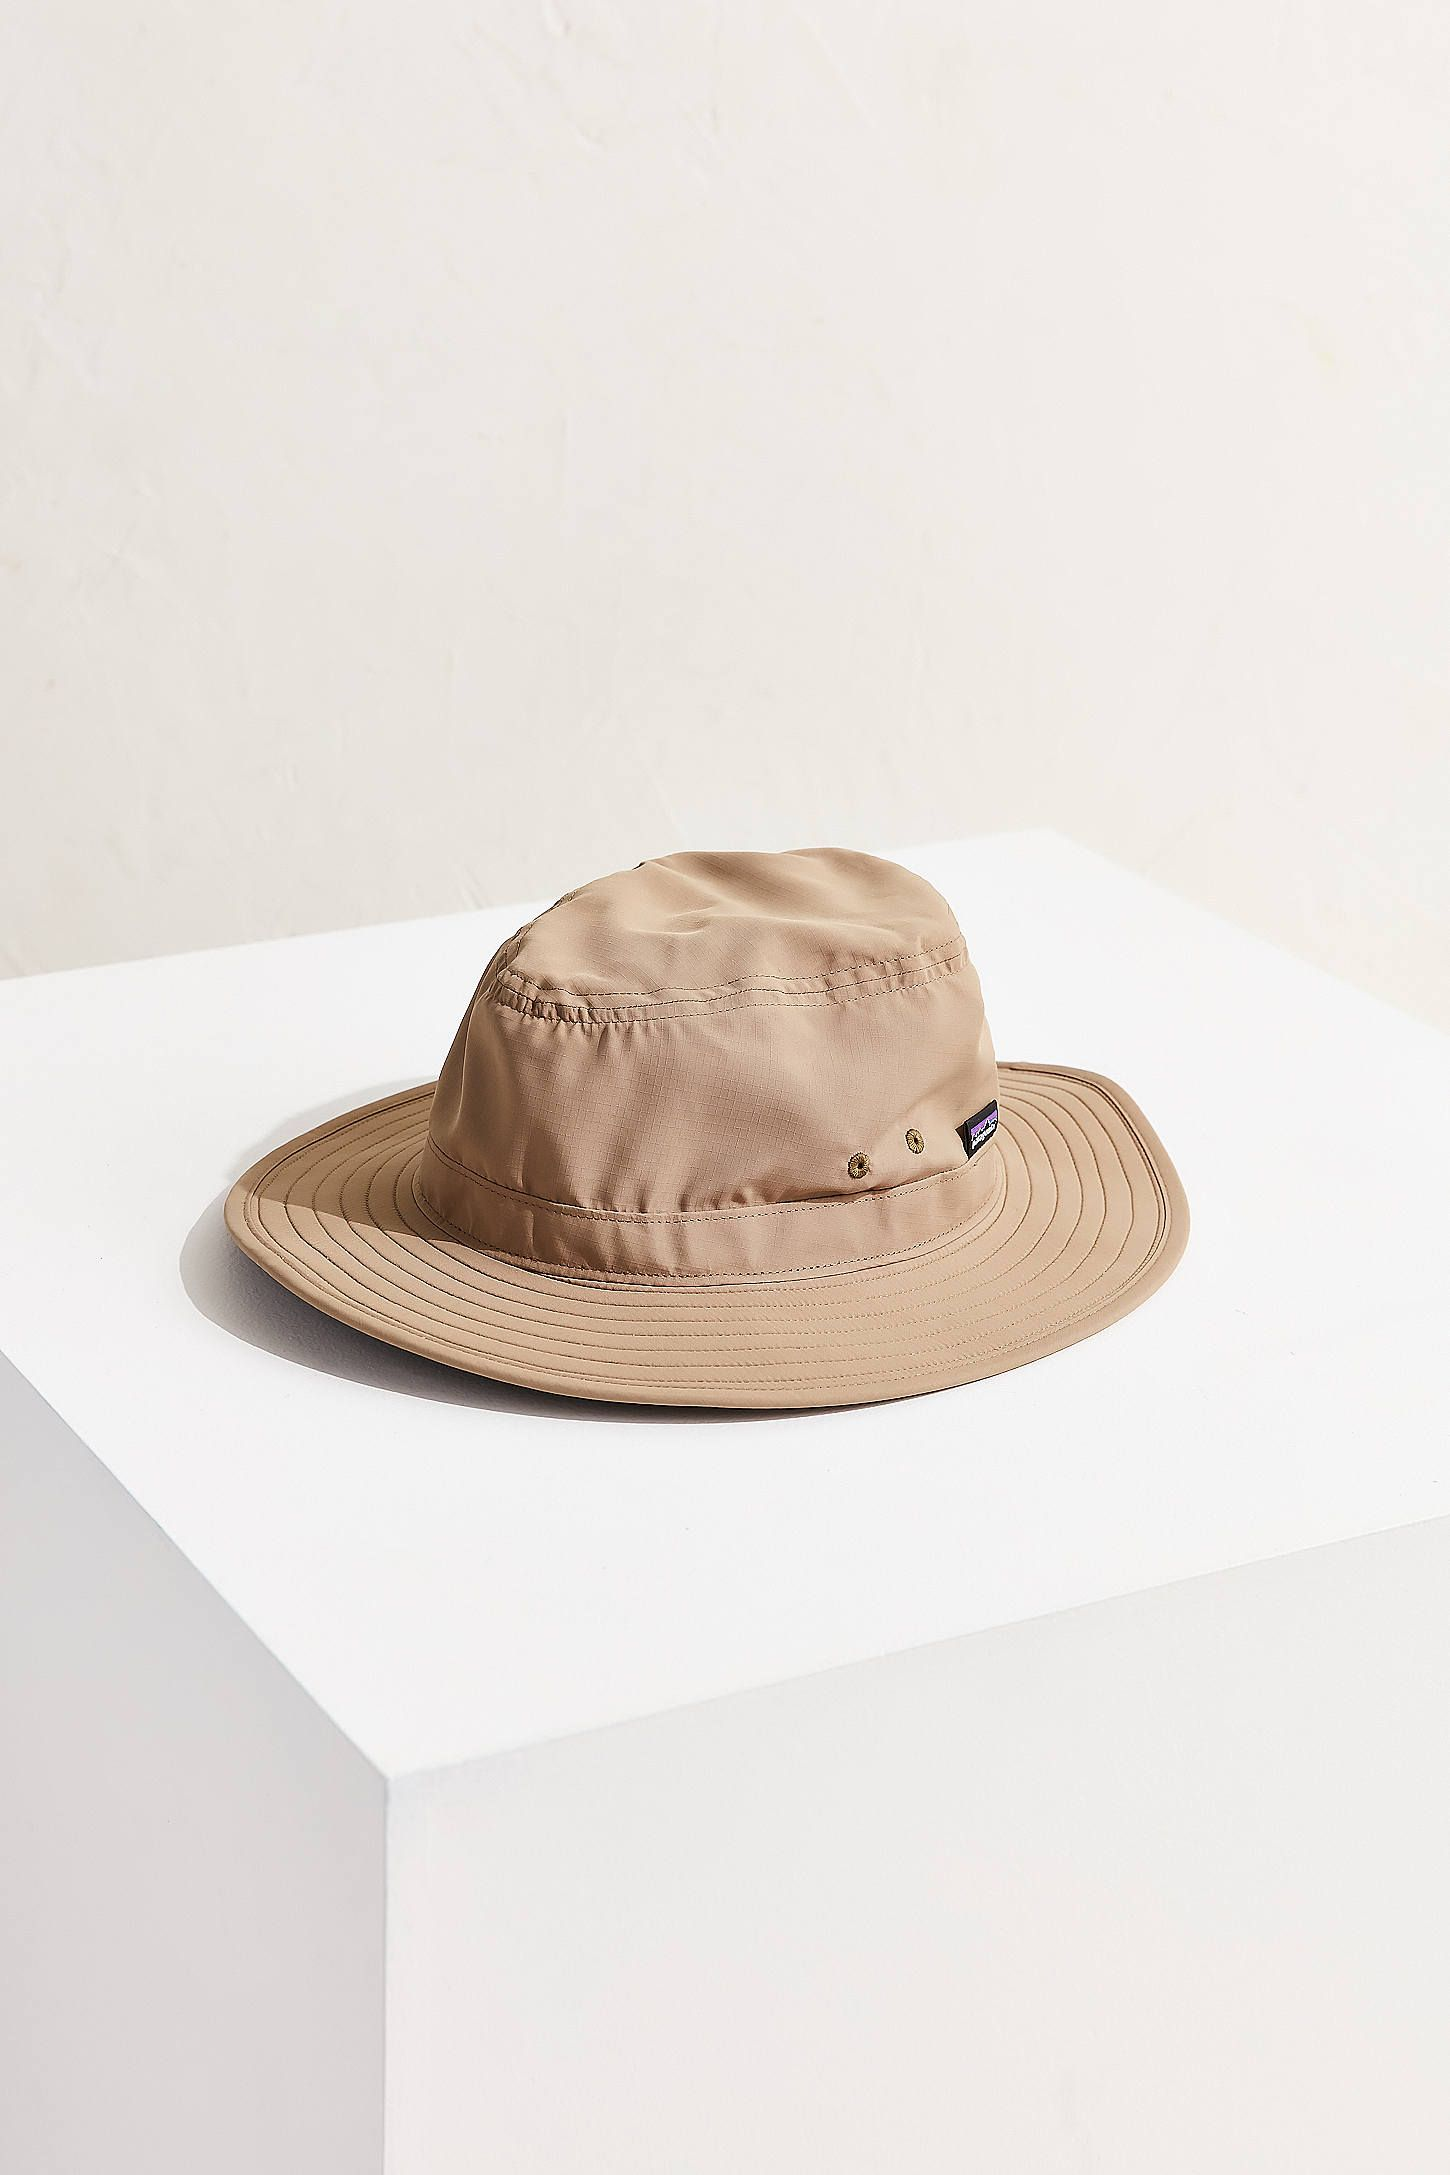 92096cbb6f0d5 Slide View  2  Patagonia Tech Sun Booney Hat